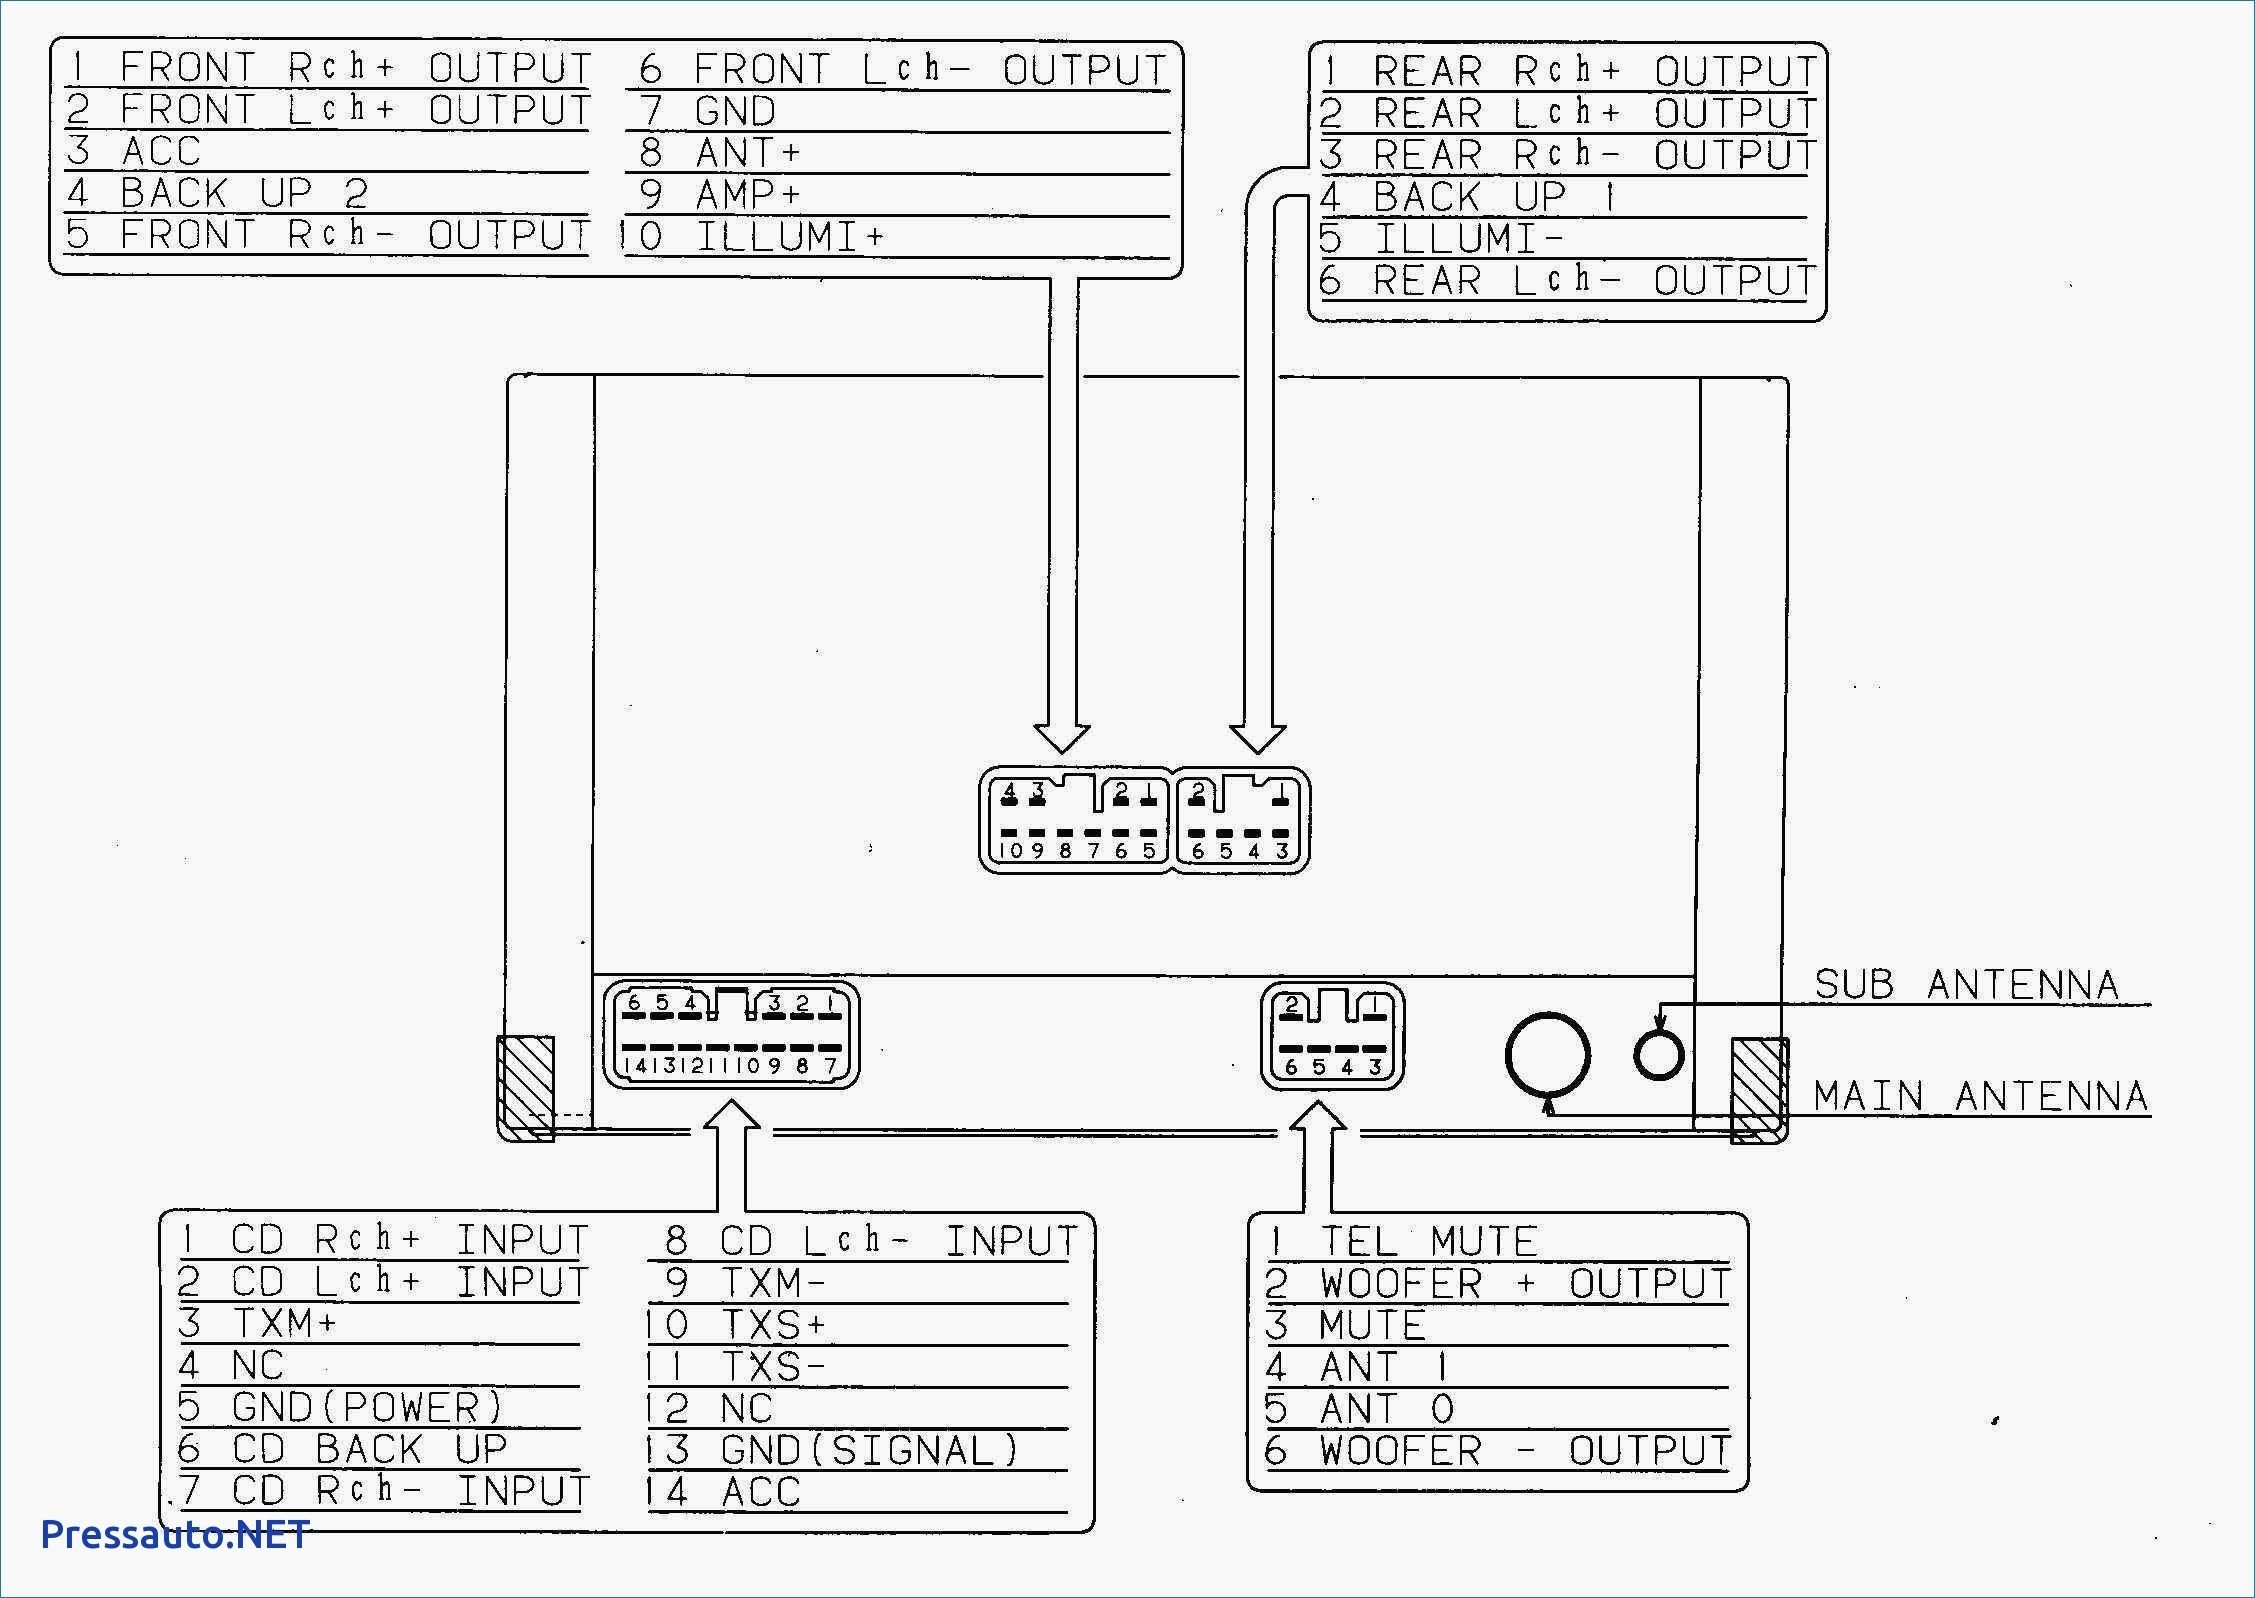 pioneer car stereo wiring diagram free Download-Pioneer Car Stereo Wiring Diagram Unique Car Audio Wire Diagram 5-n